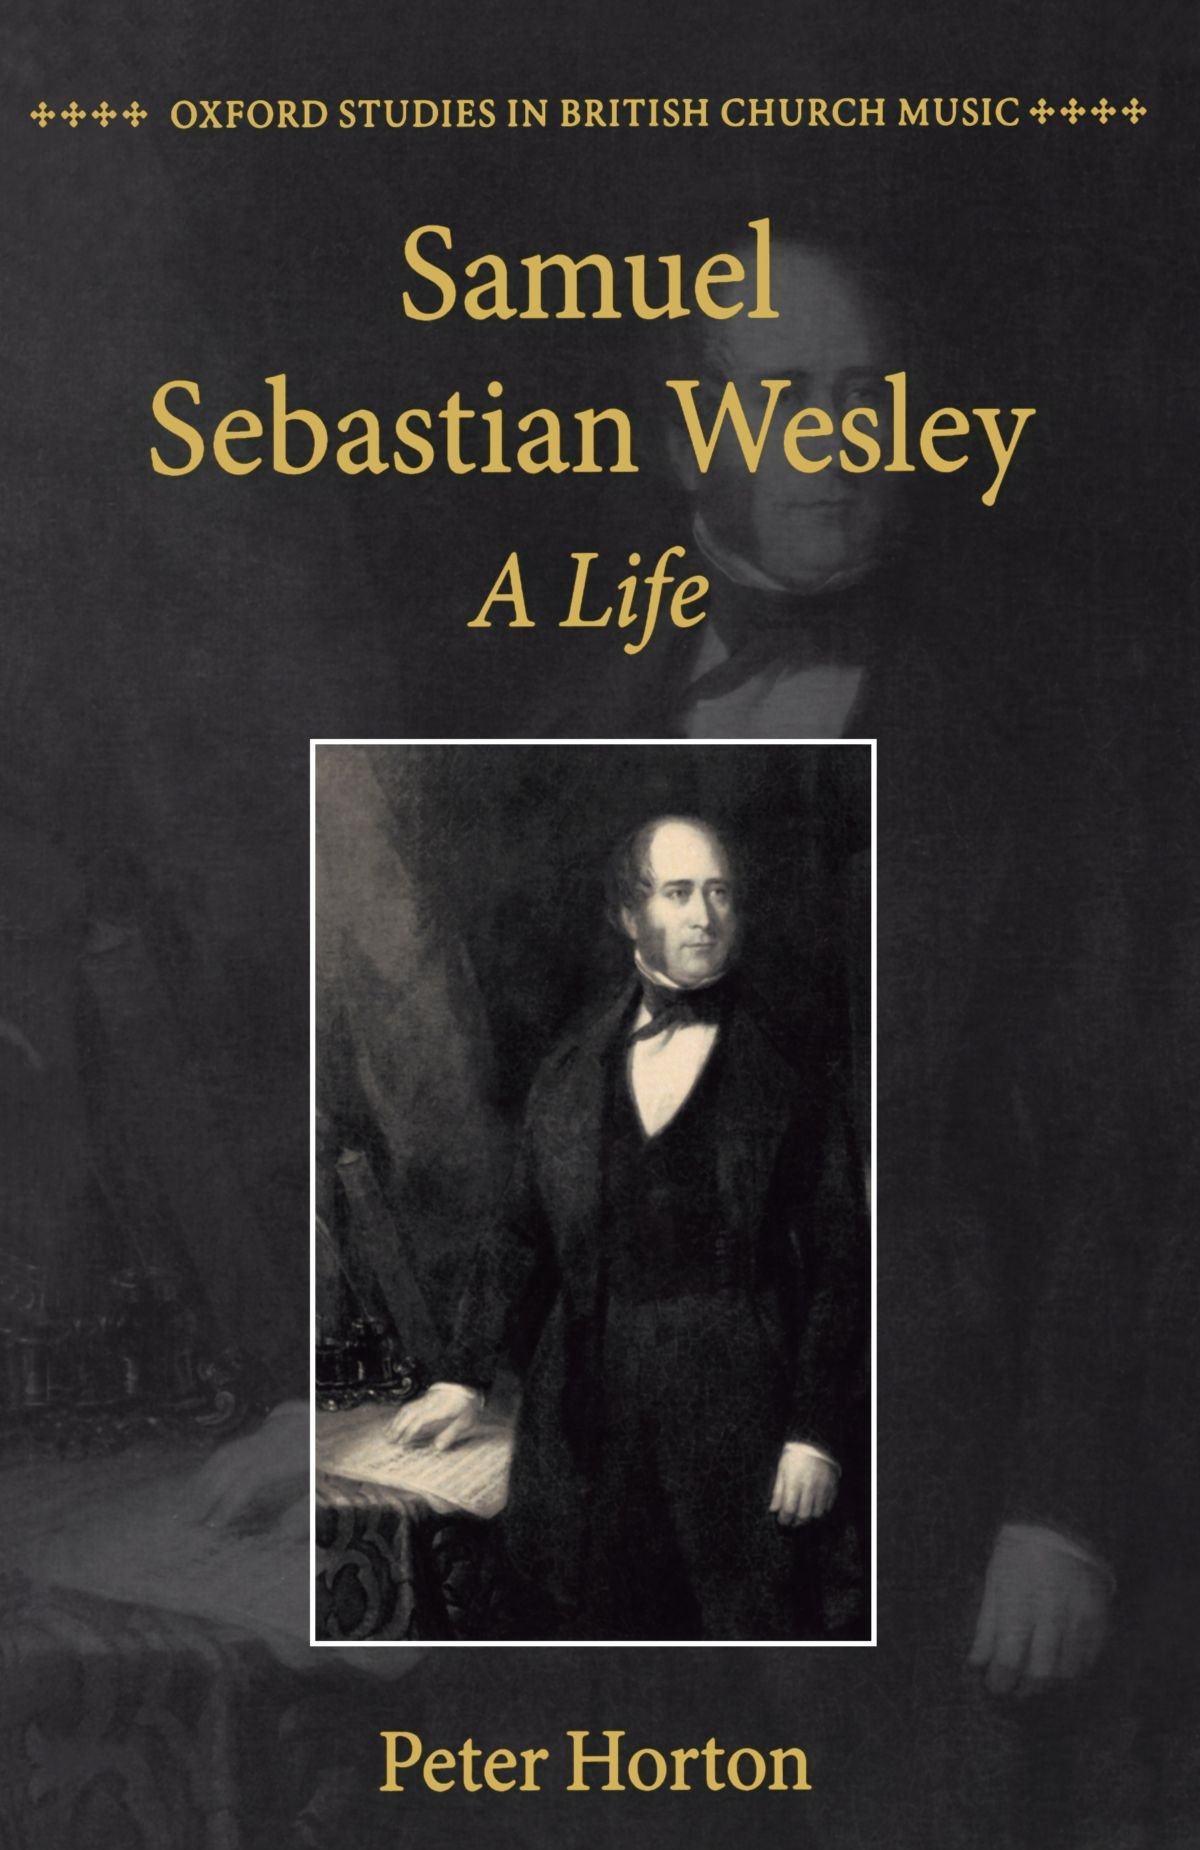 Samuel Sebastian Wesley: A Life (Oxford Studies in British Church Music) by Oxford University Press